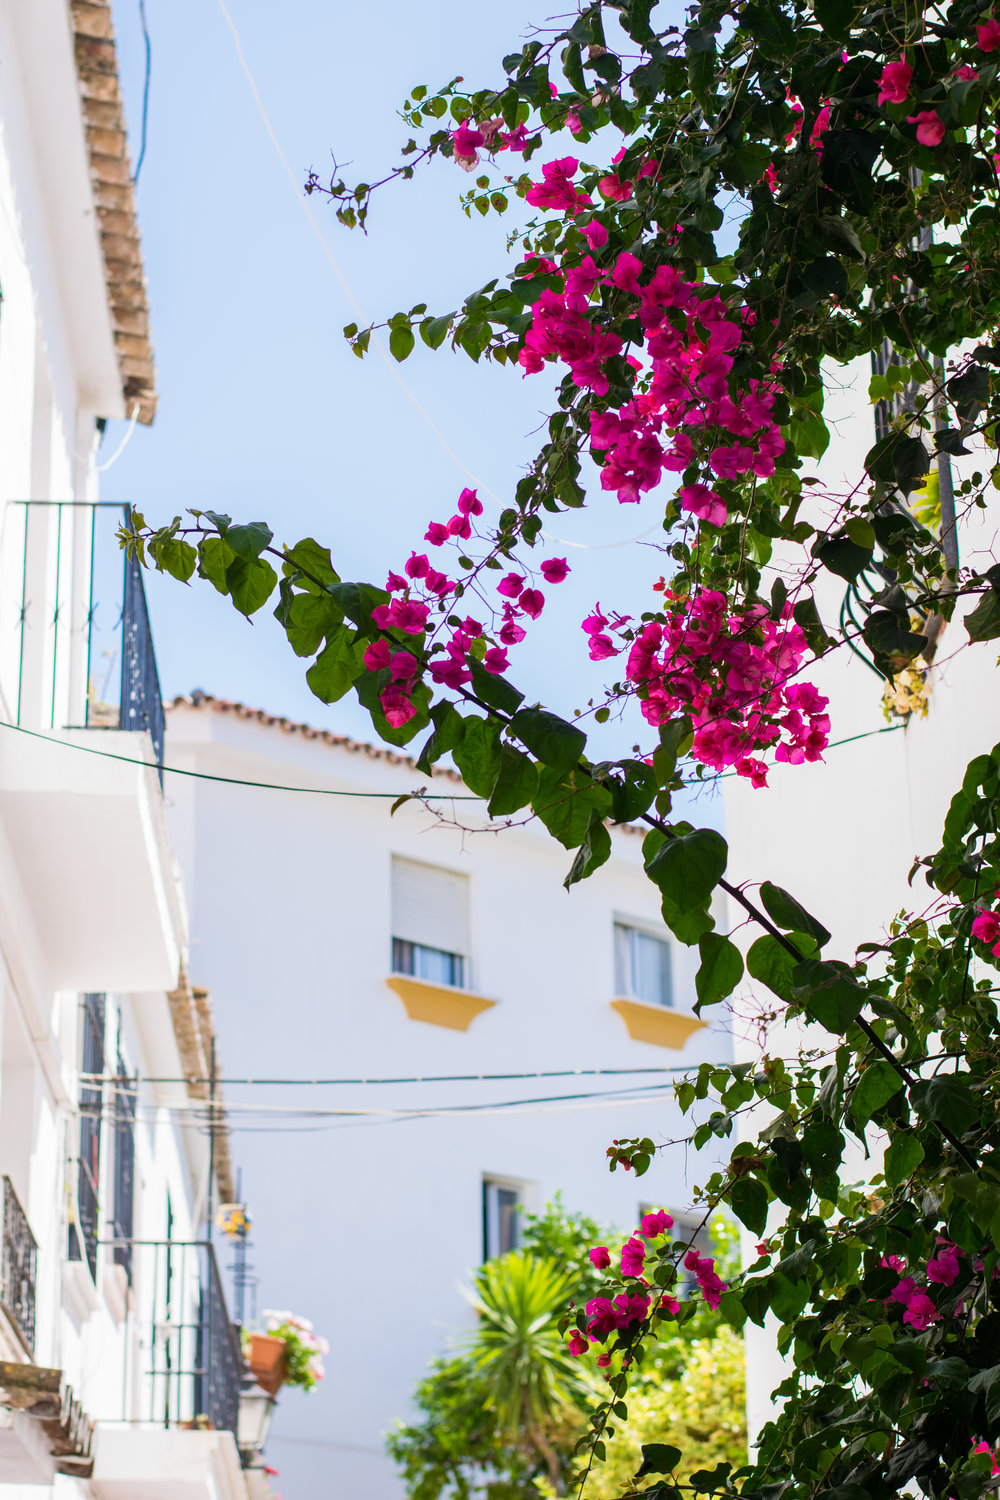 marbella old town, things to see in marbella, places to eat in marbs